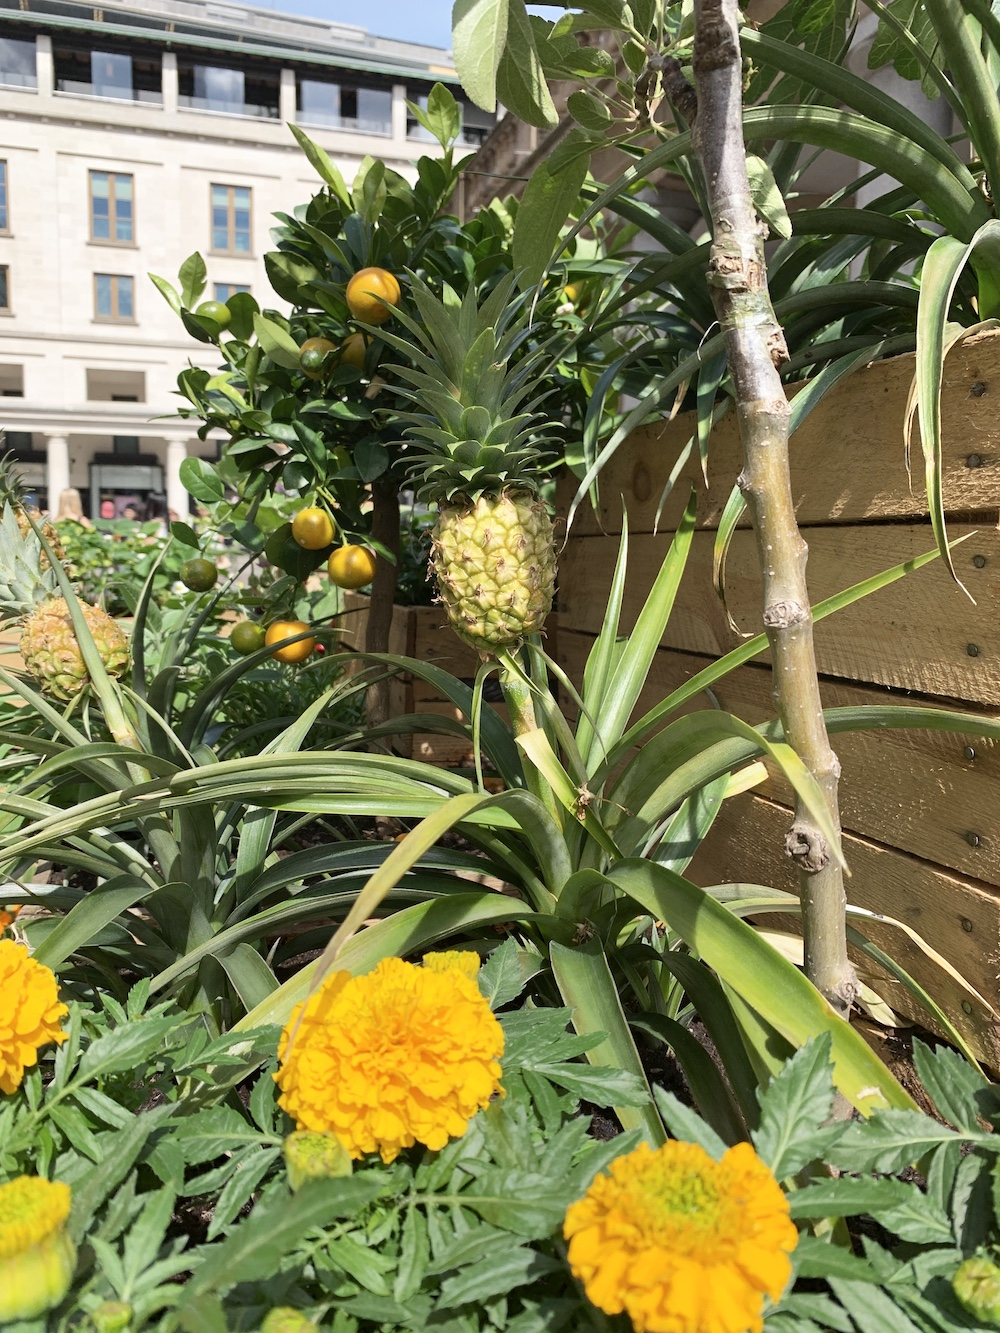 Crate Gardening for Small Spaces Pineapple With Lemon Tree #Garden #Gardening #SmallSpace #SmallSpaceGardening #ContainerGardening #VegetableGarden #HerbGarden #PorchGarden #PatioGarden